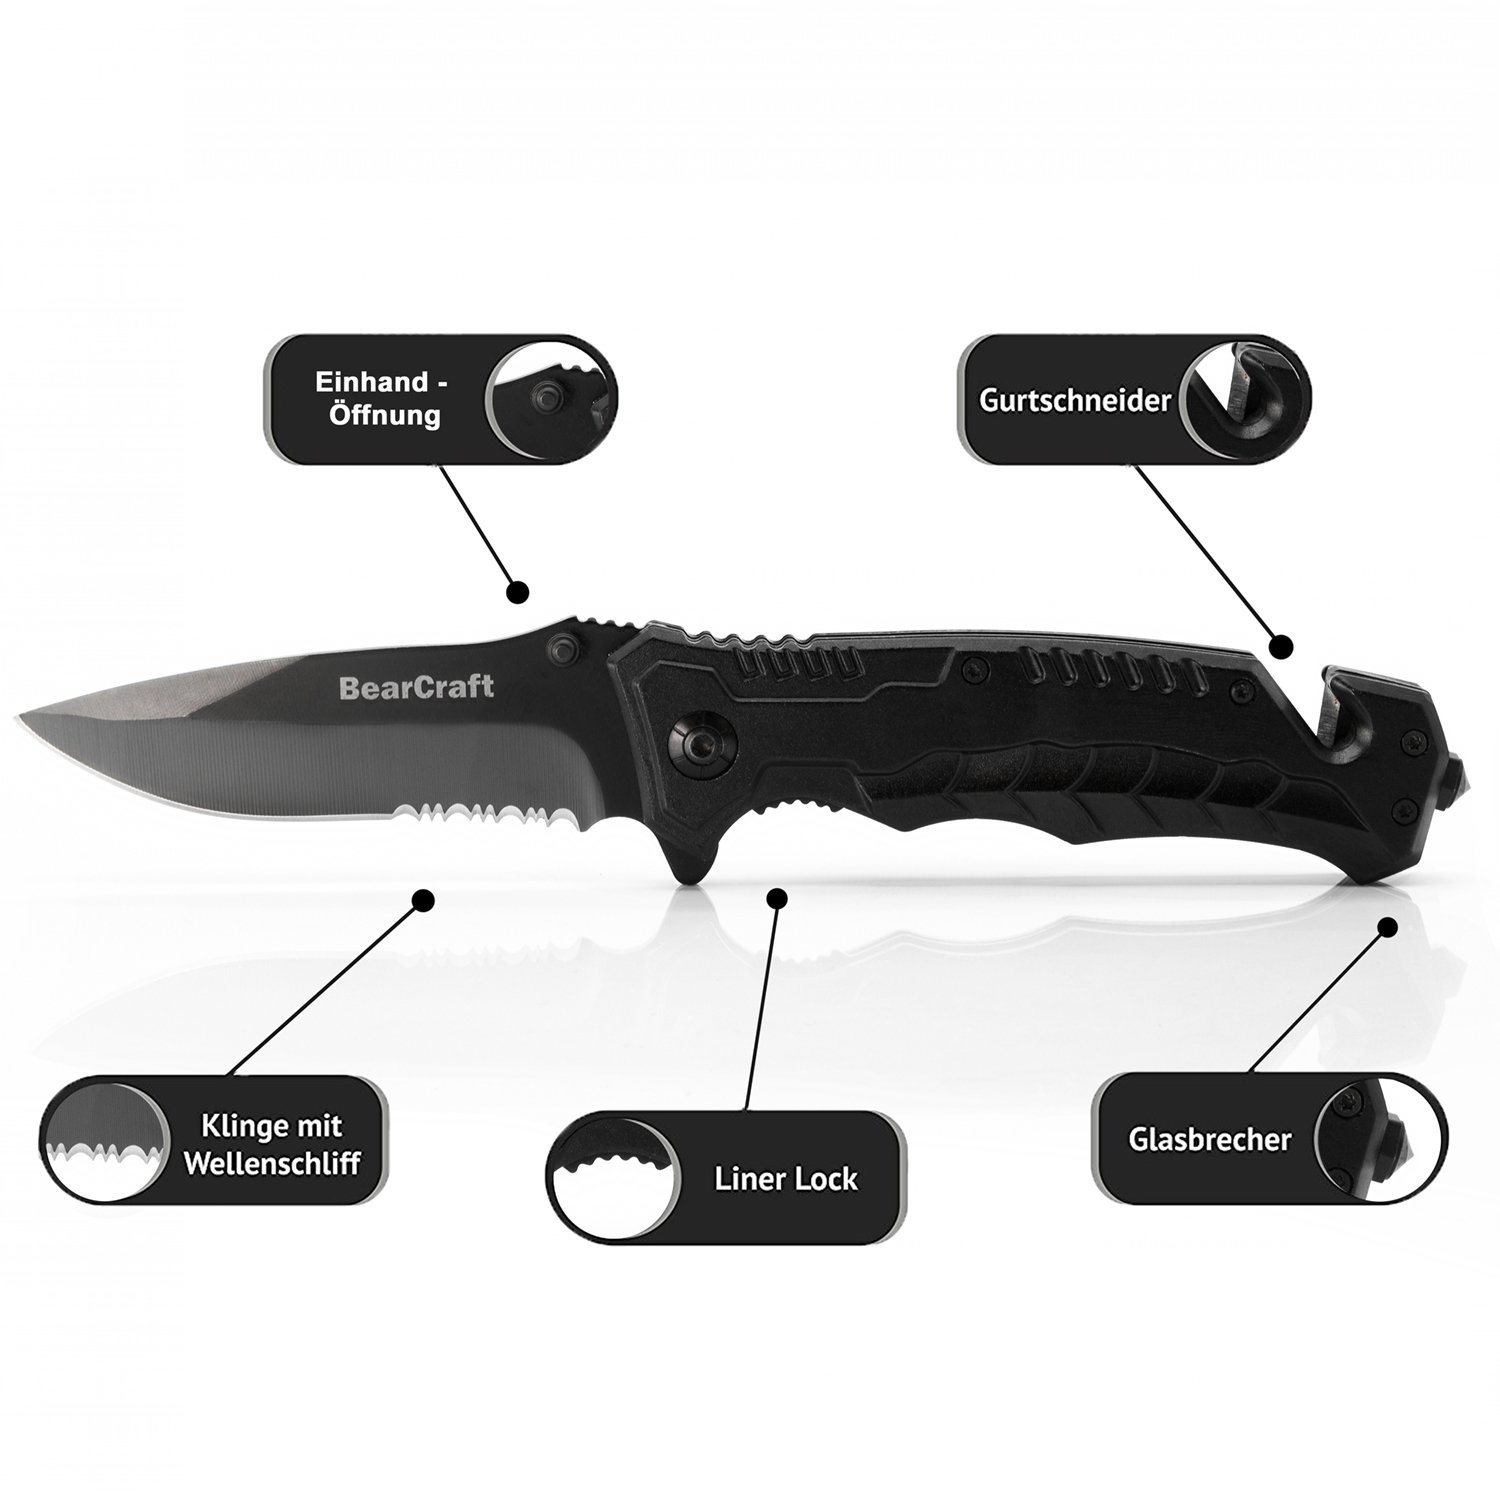 Bearcraft Klappmesser Schwarz Scharfes Outdoor Survival